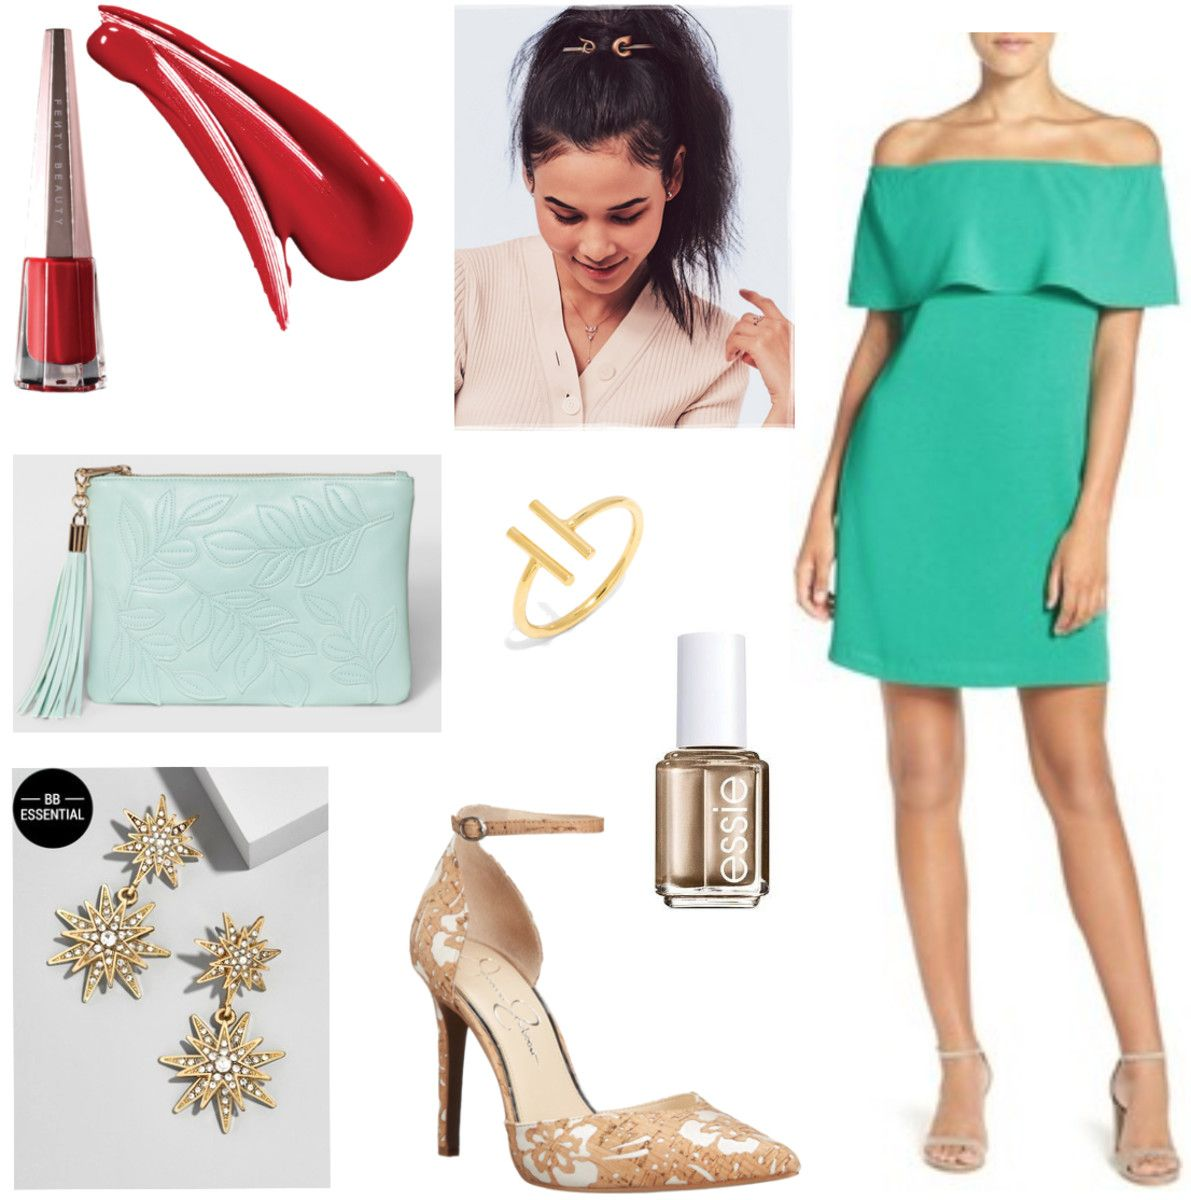 Green Off-Shoulder Dress For Cocktail and Dinner Parties